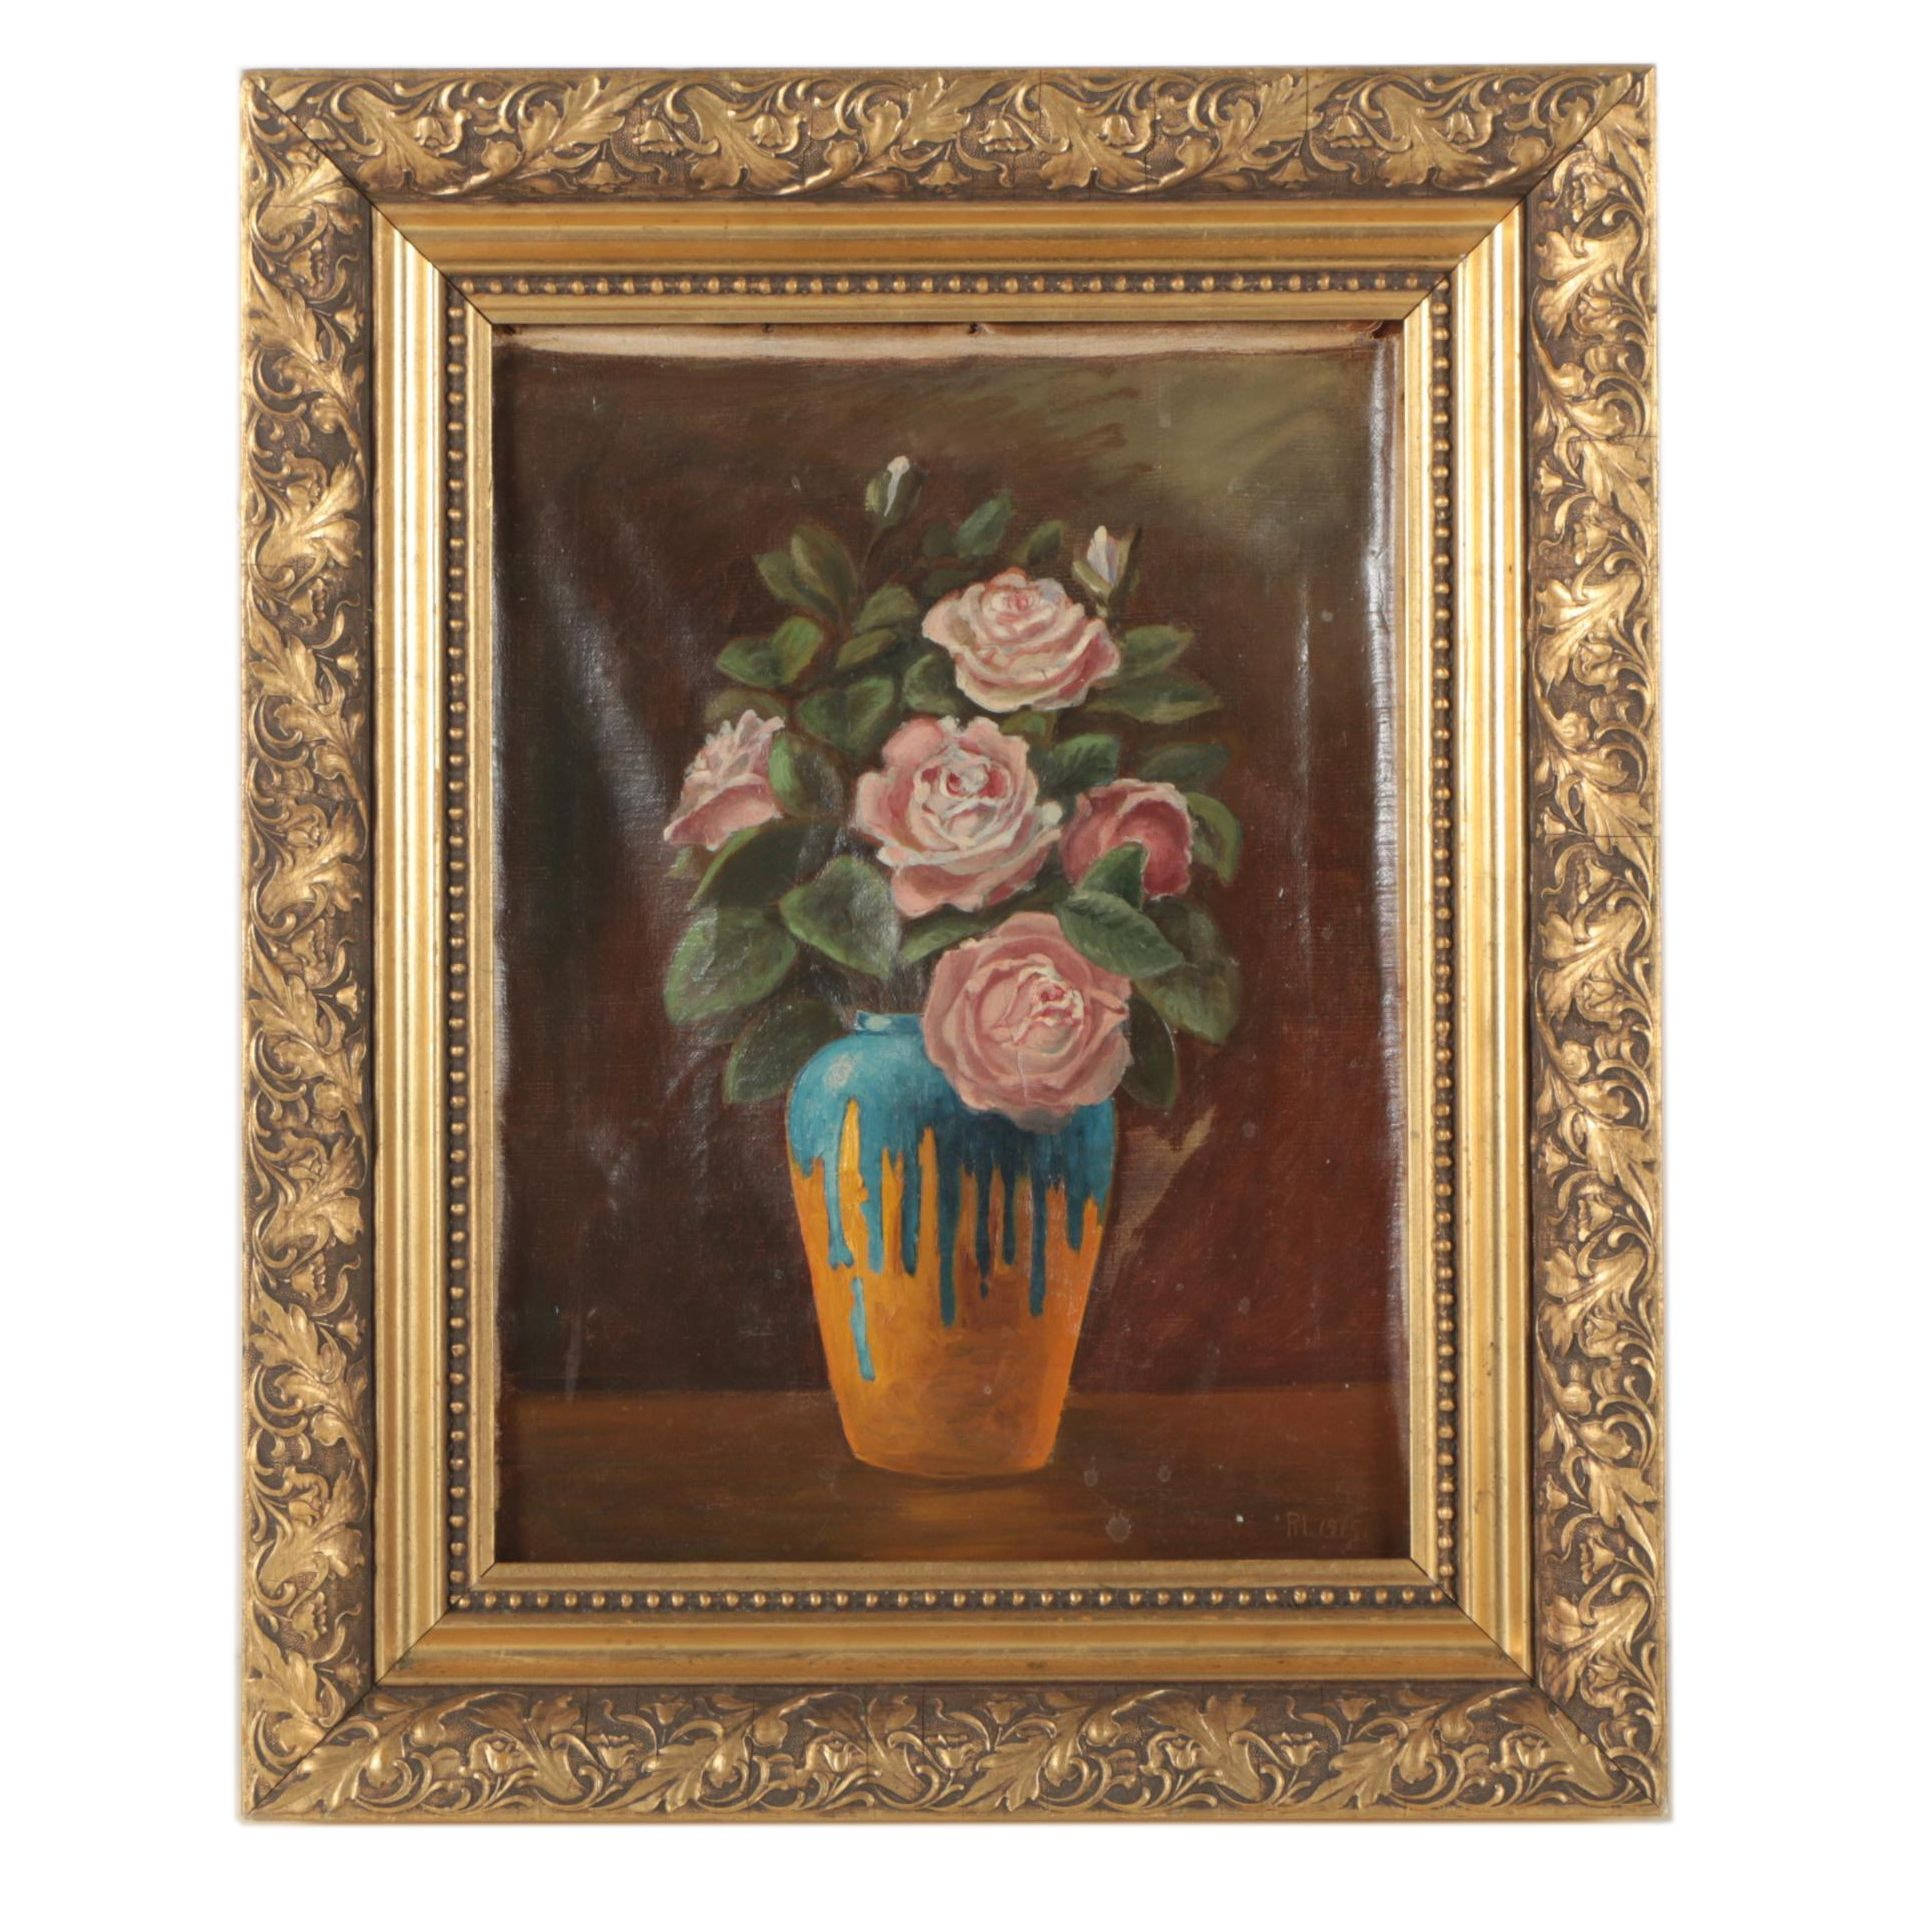 R.I. Oil Painting of a Floral Bouquet